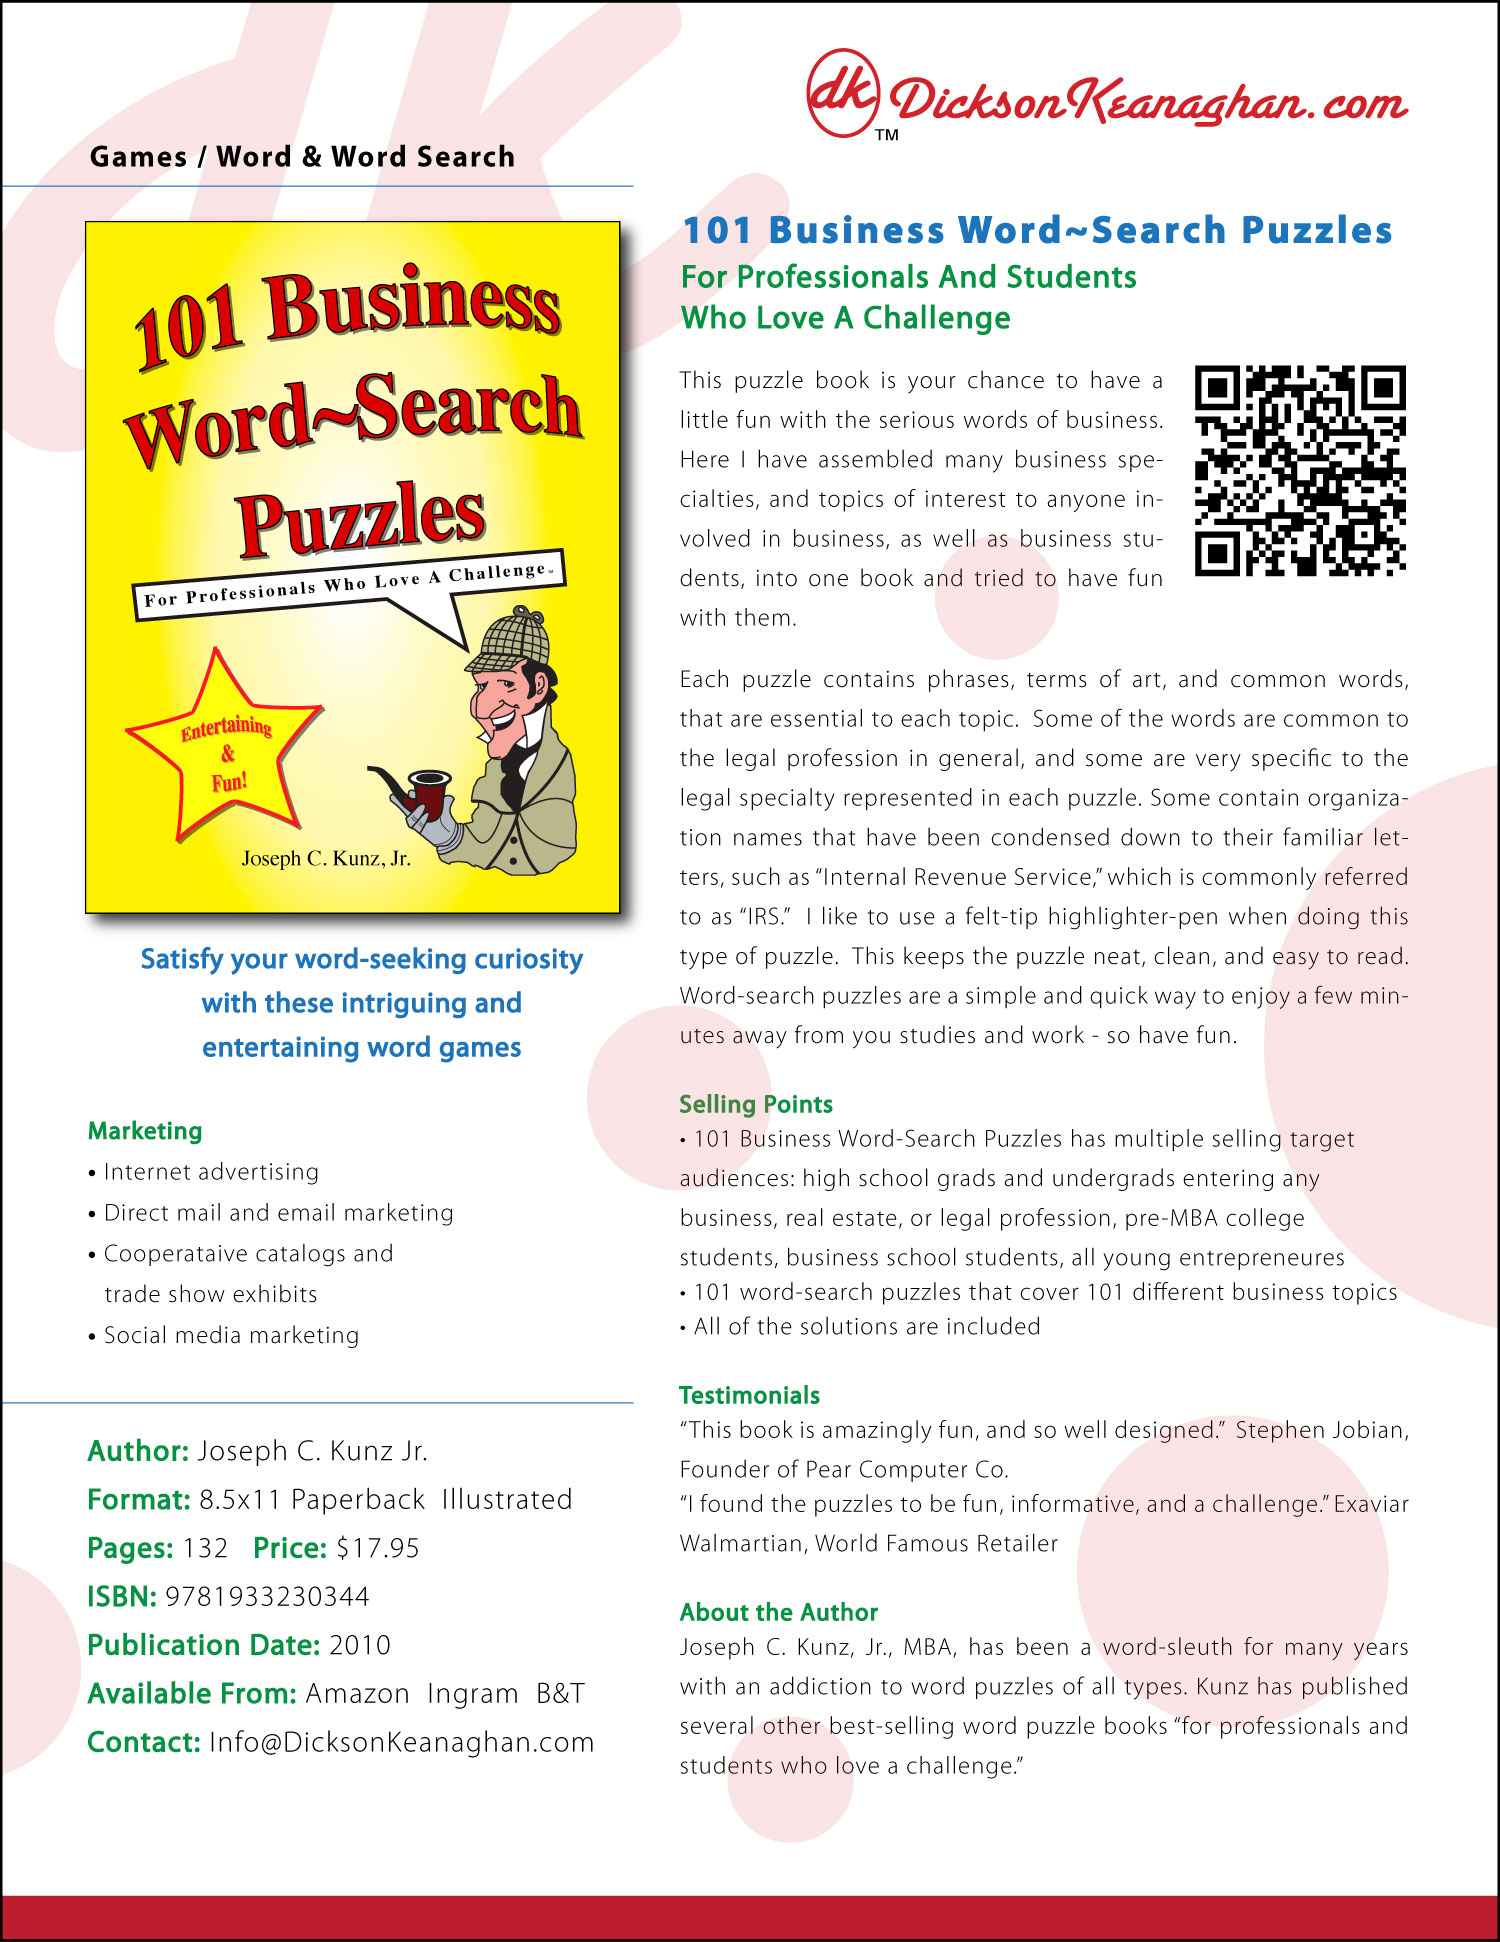 Sell Sheet for 101 Business Word-Search Puzzles, by Joseph C. Kunz, Jr.